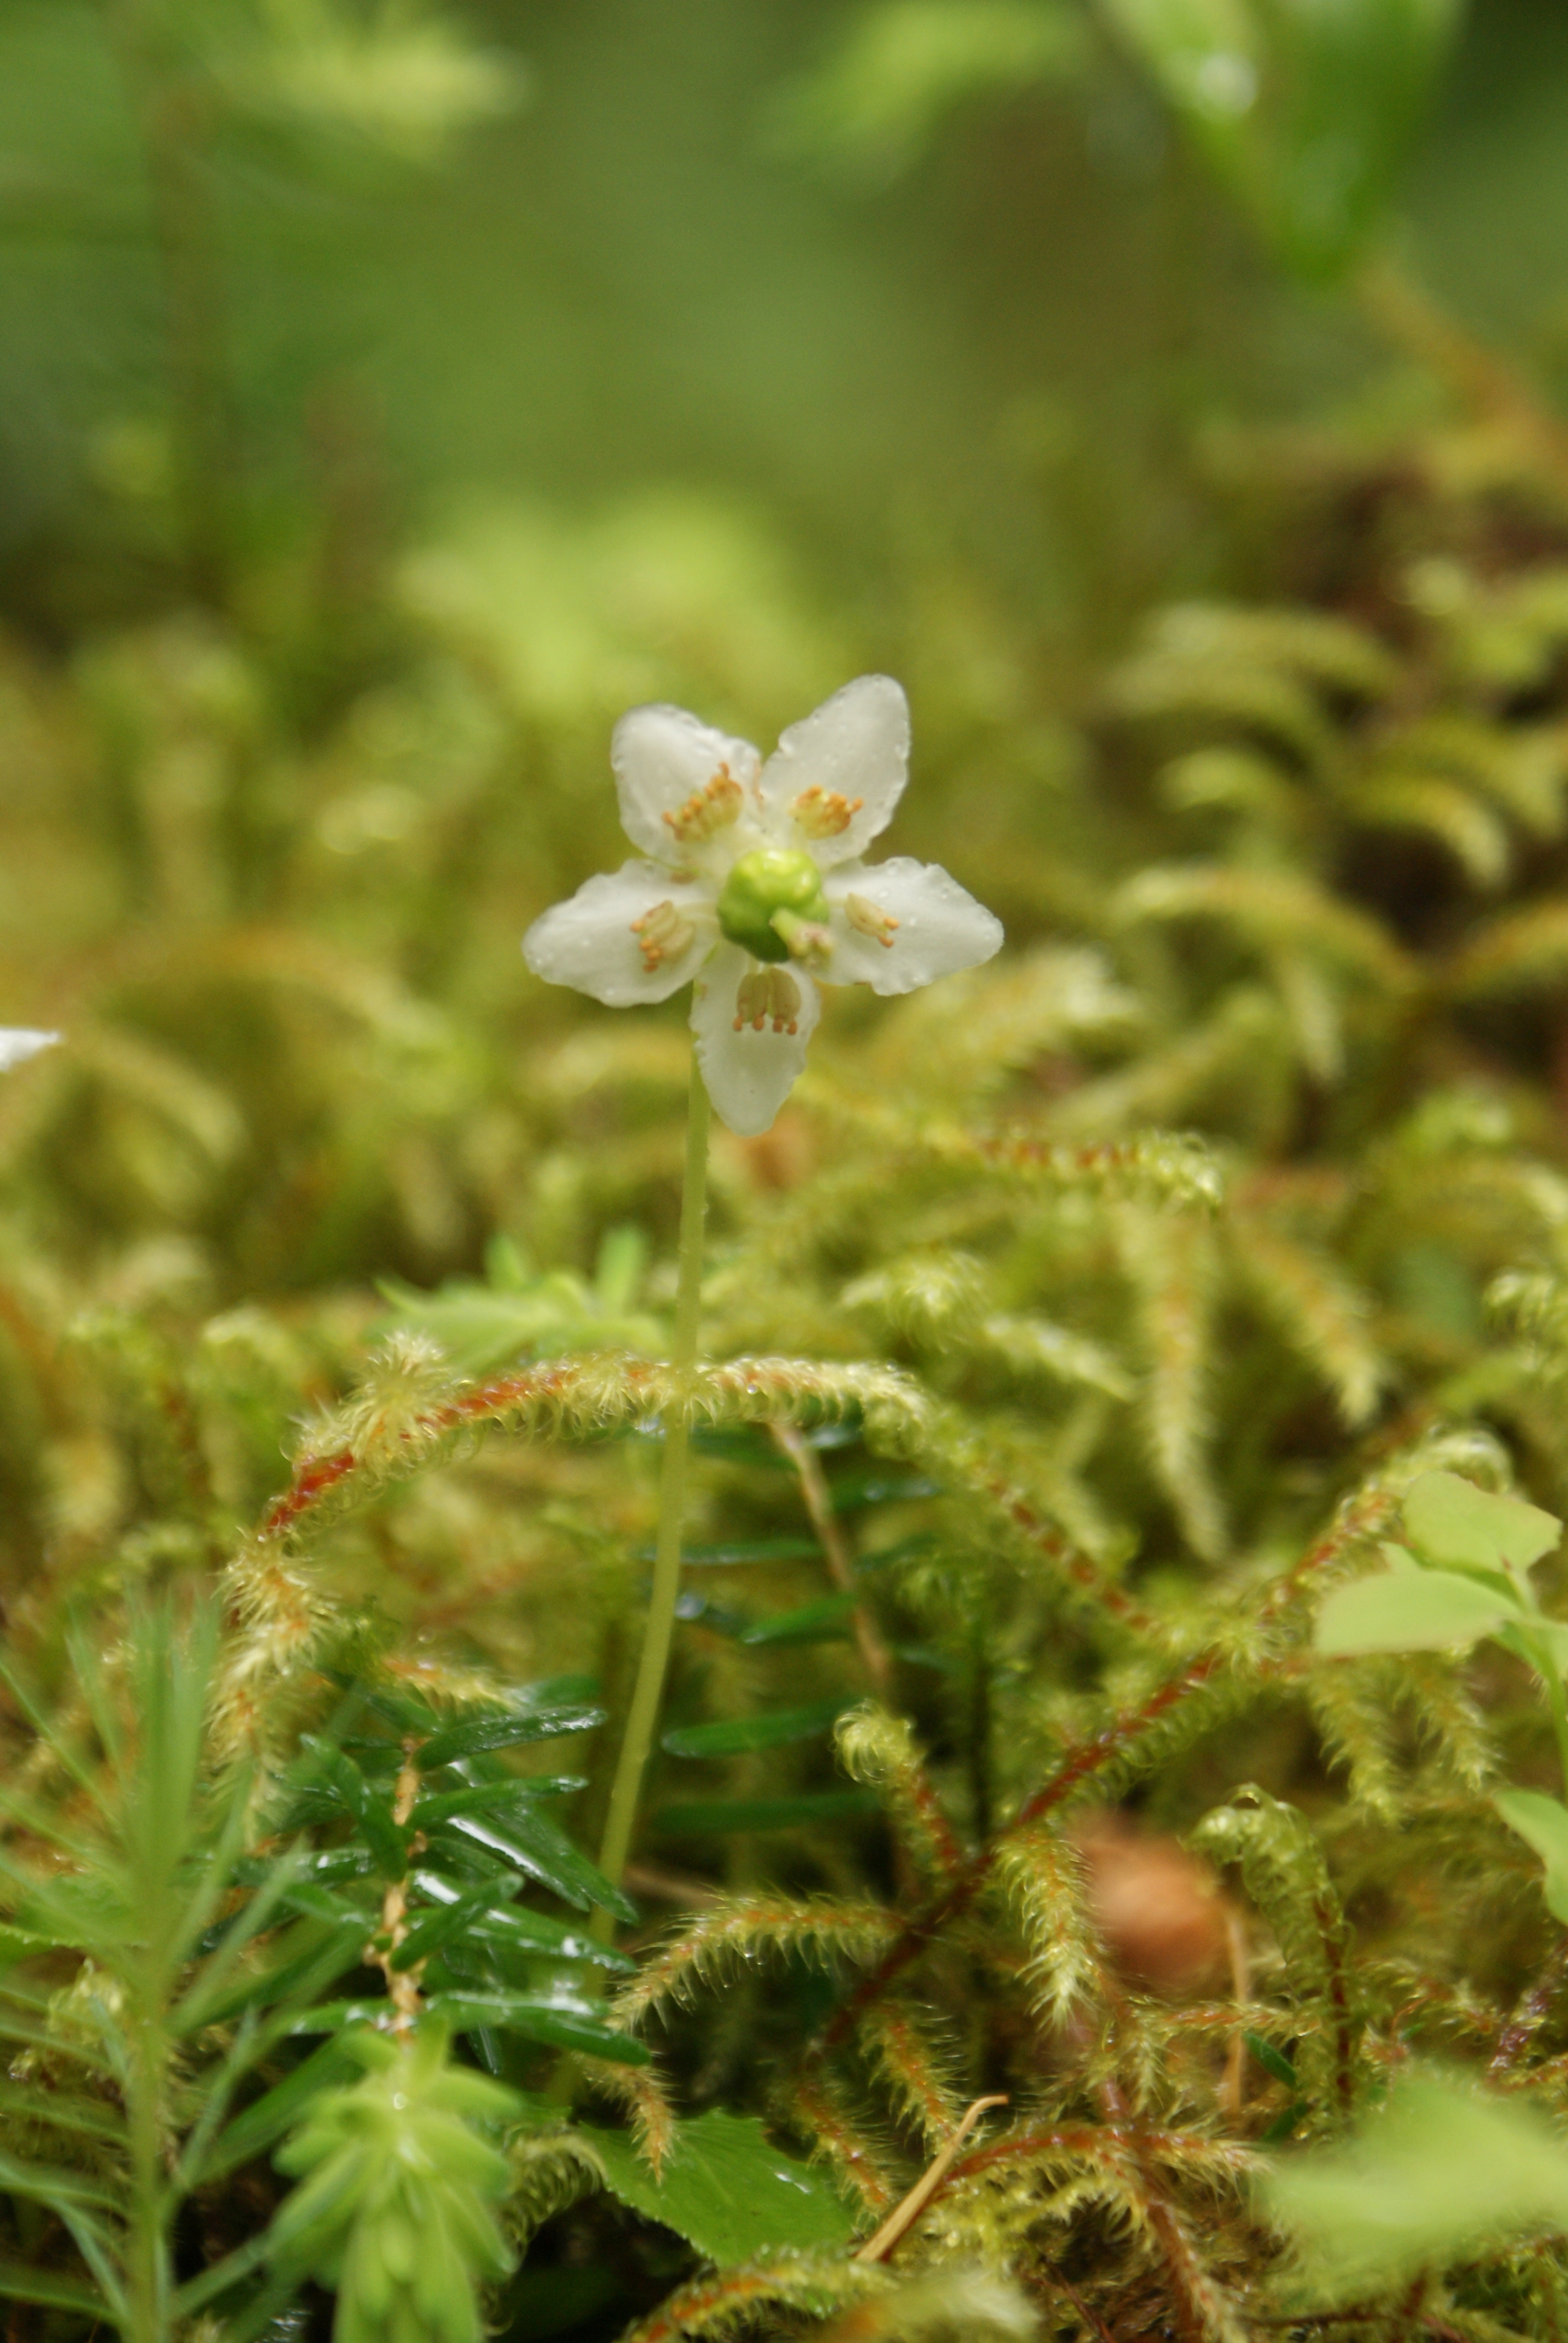 Tiny White Flower on a Mossy Log